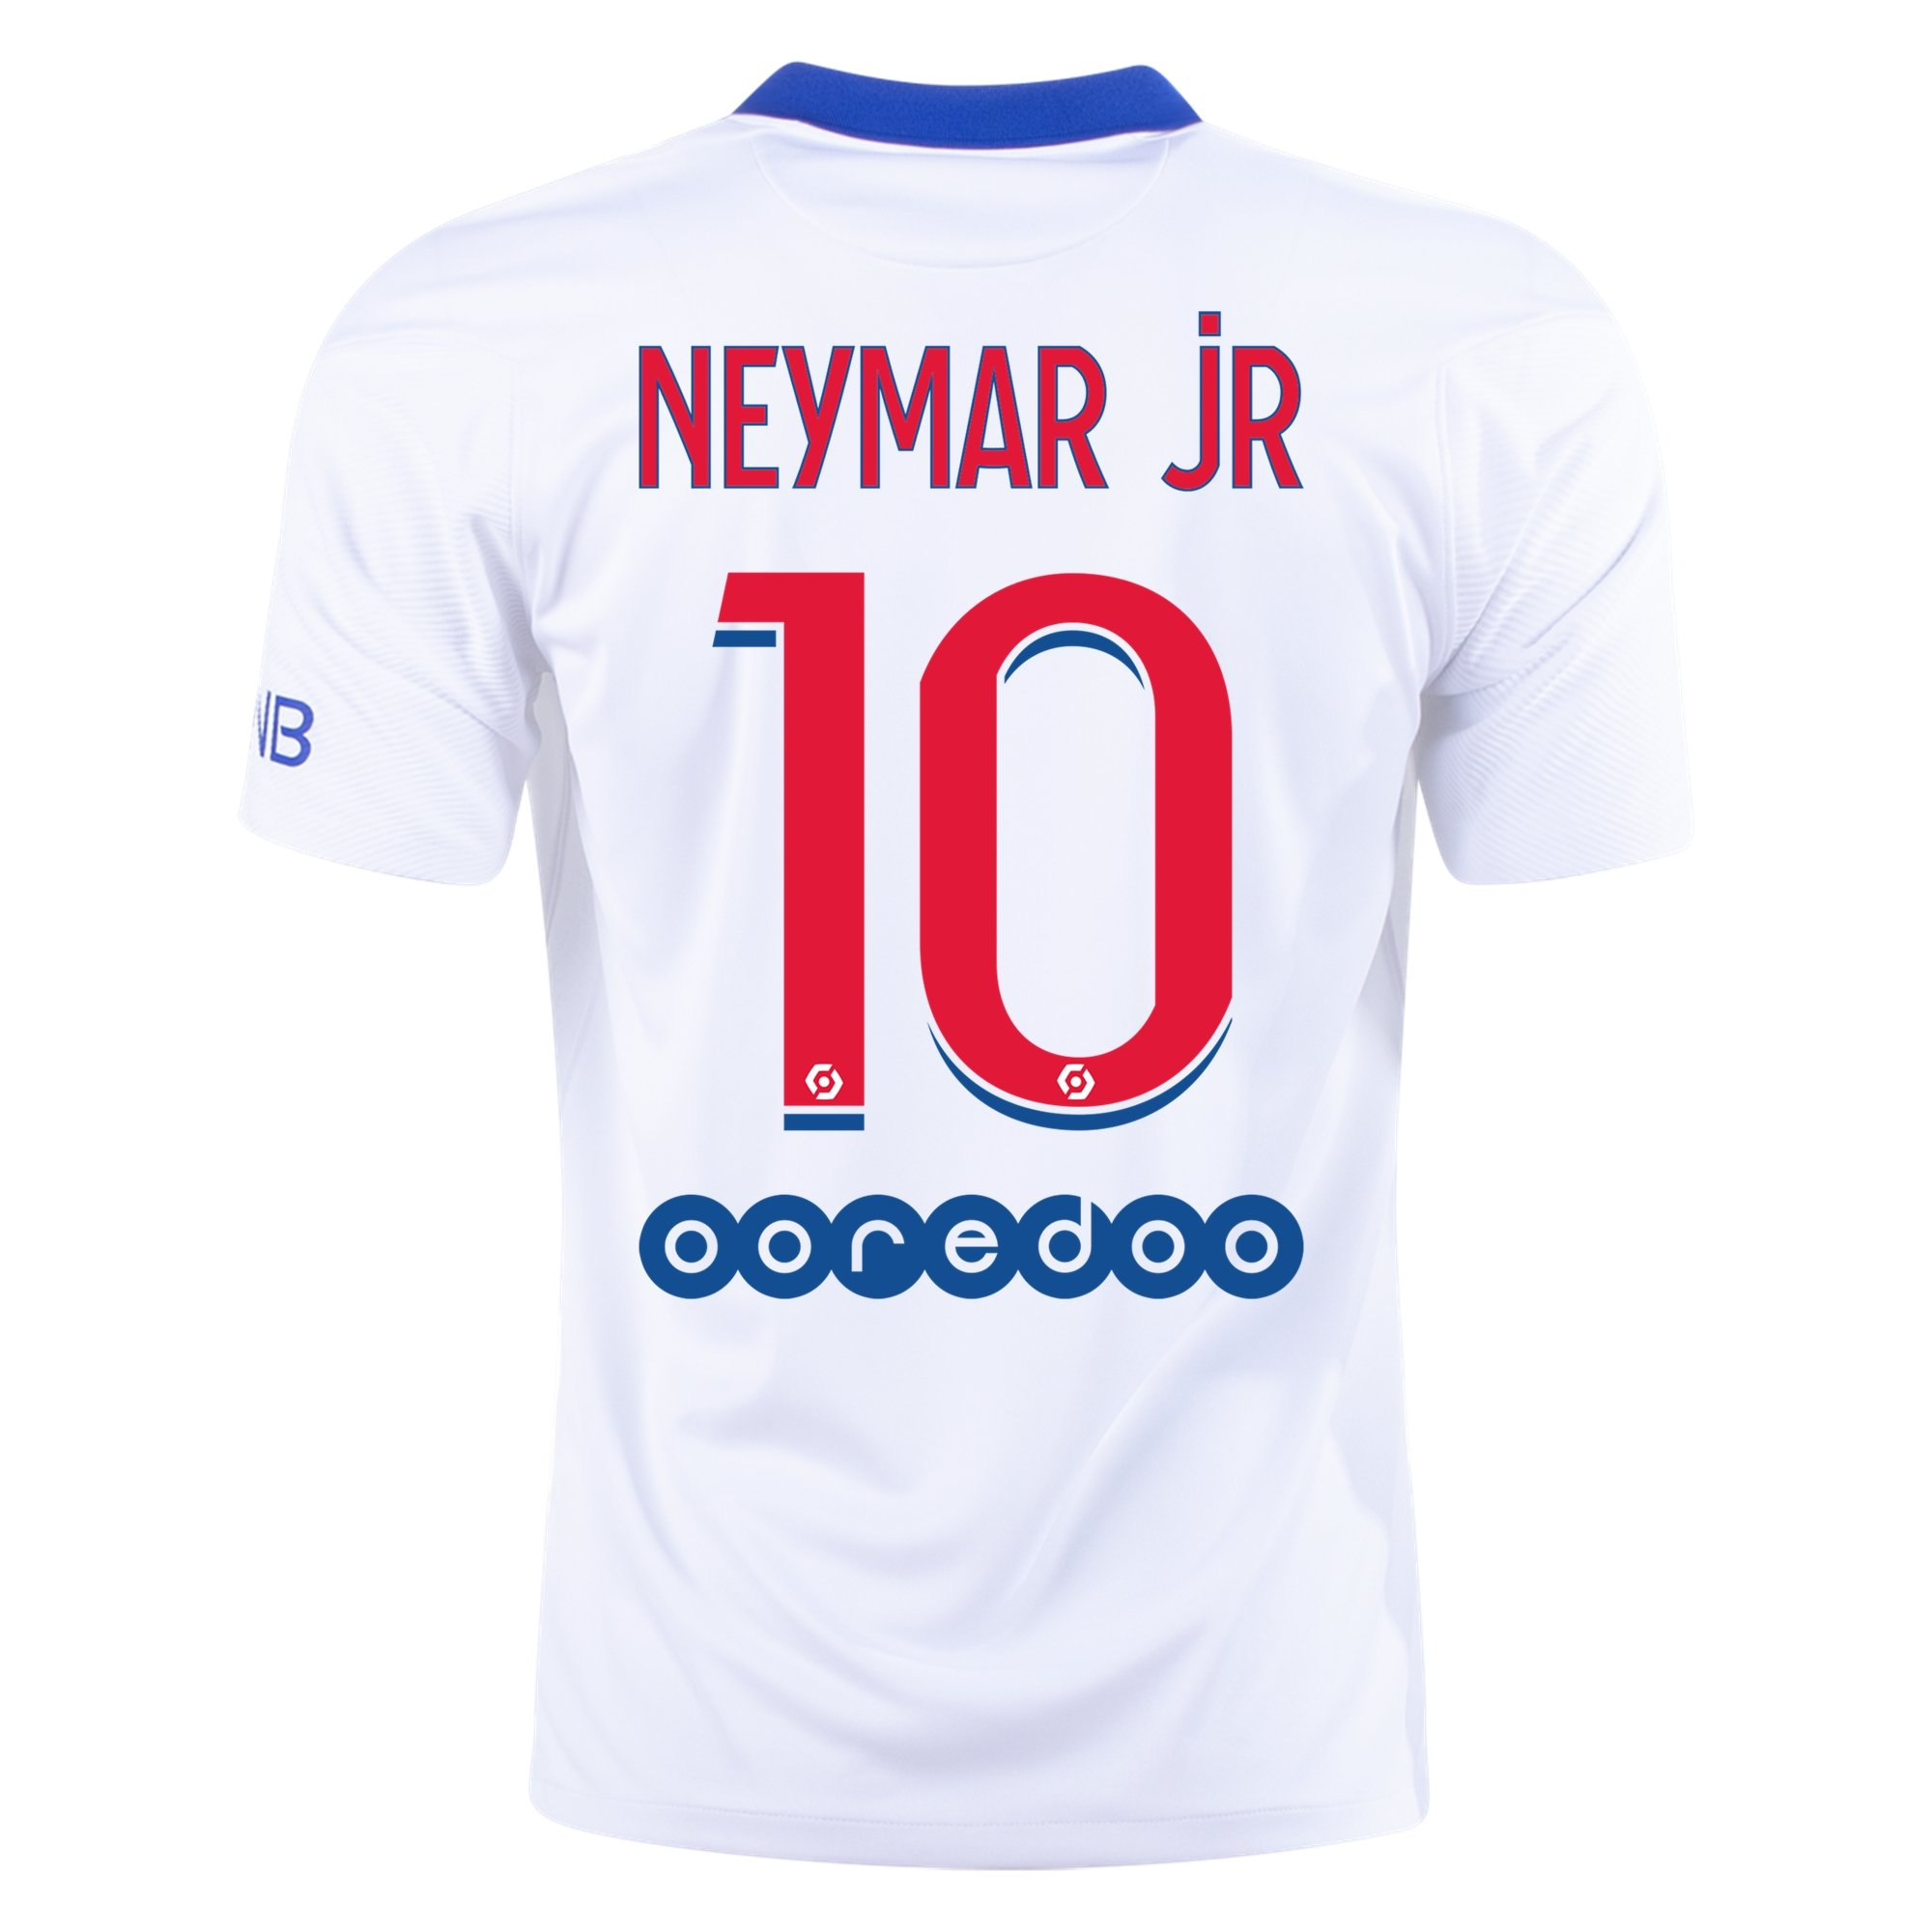 Nike Replica Nike Neymar Jr  Paris Saint-Germain Away Jersey 20/21